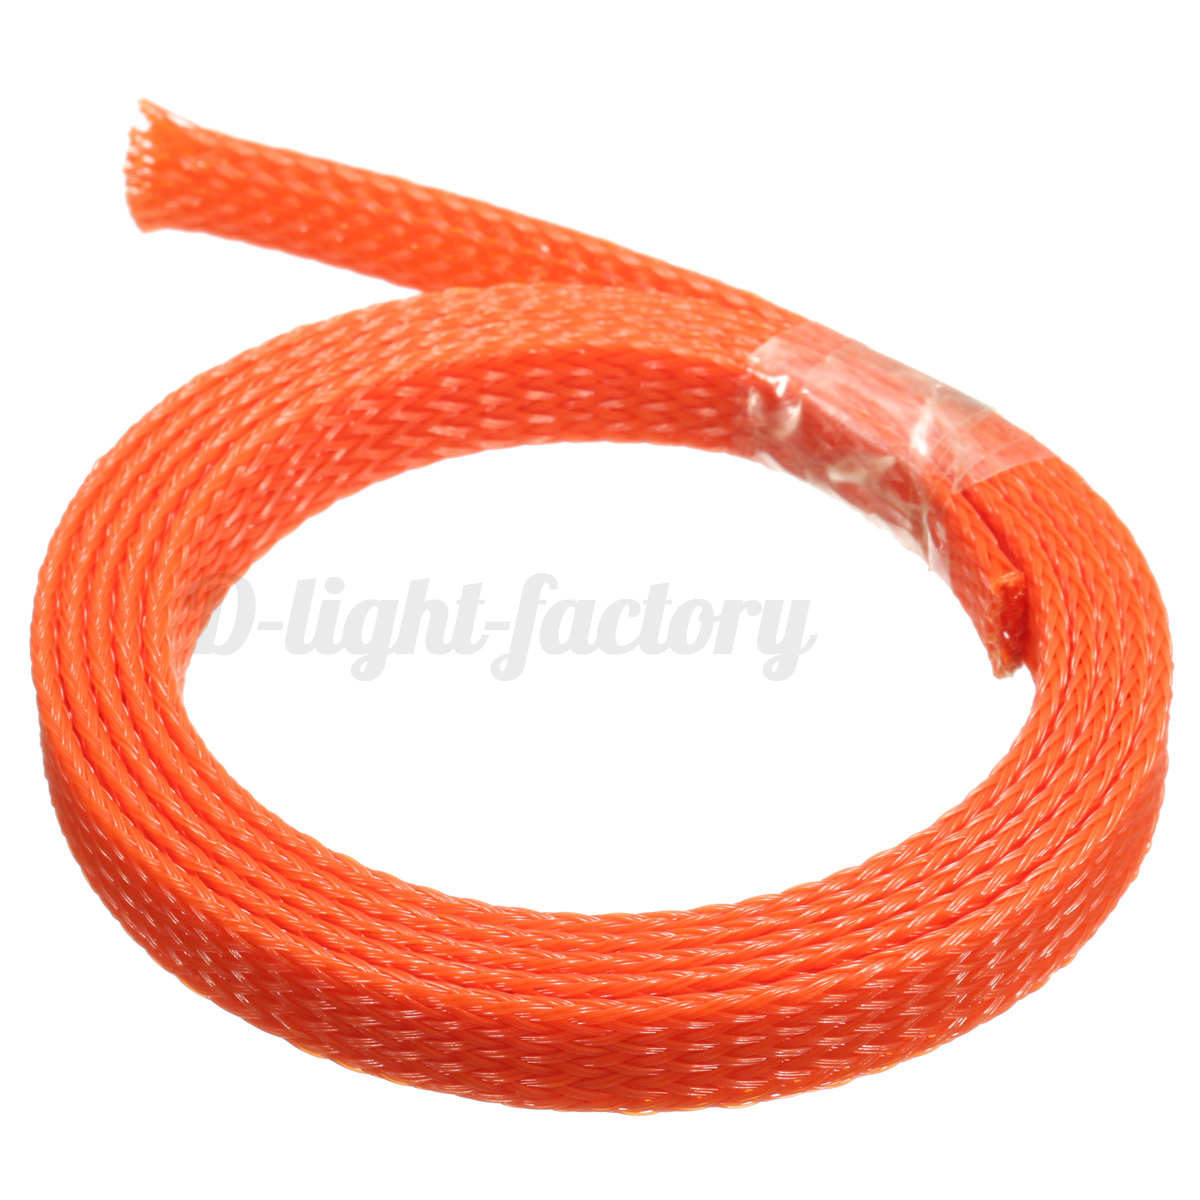 1pcs 1m 8mm Braided Wire Tidy Mesh Expandable Sleeving Cable Wire ...